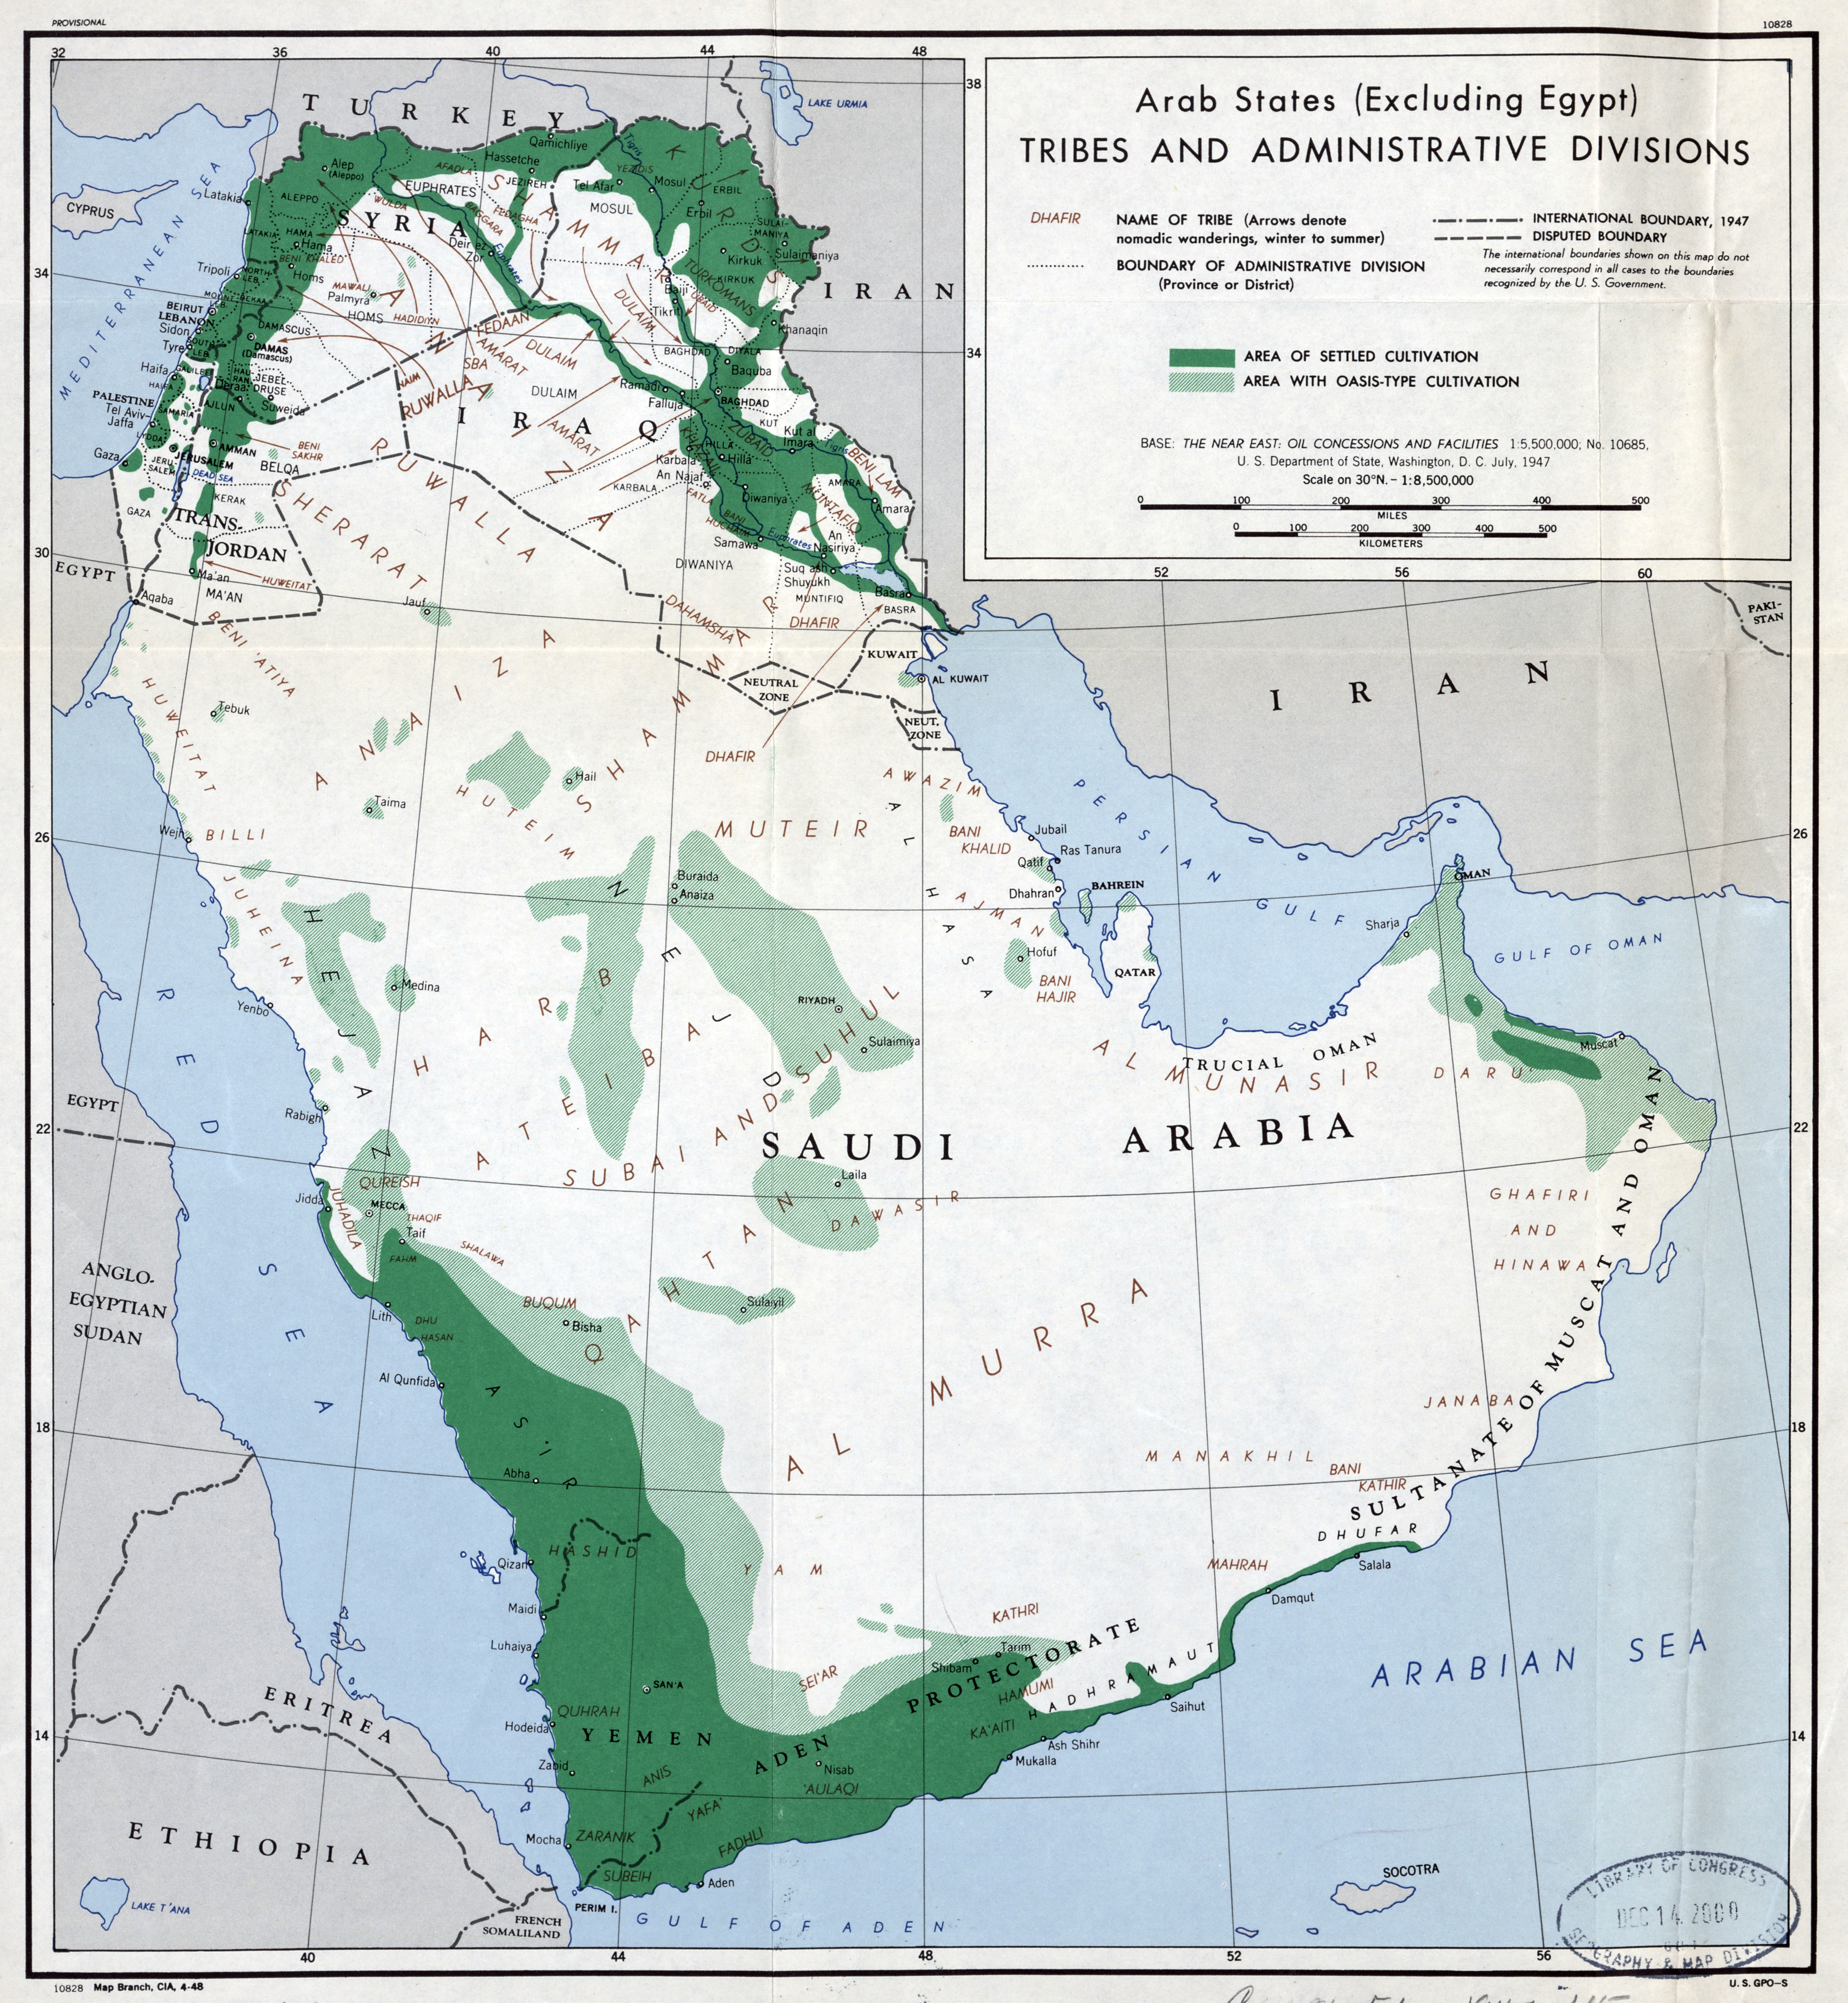 large detailed arab states excluding egypt tribes and administrative divisions map 1947